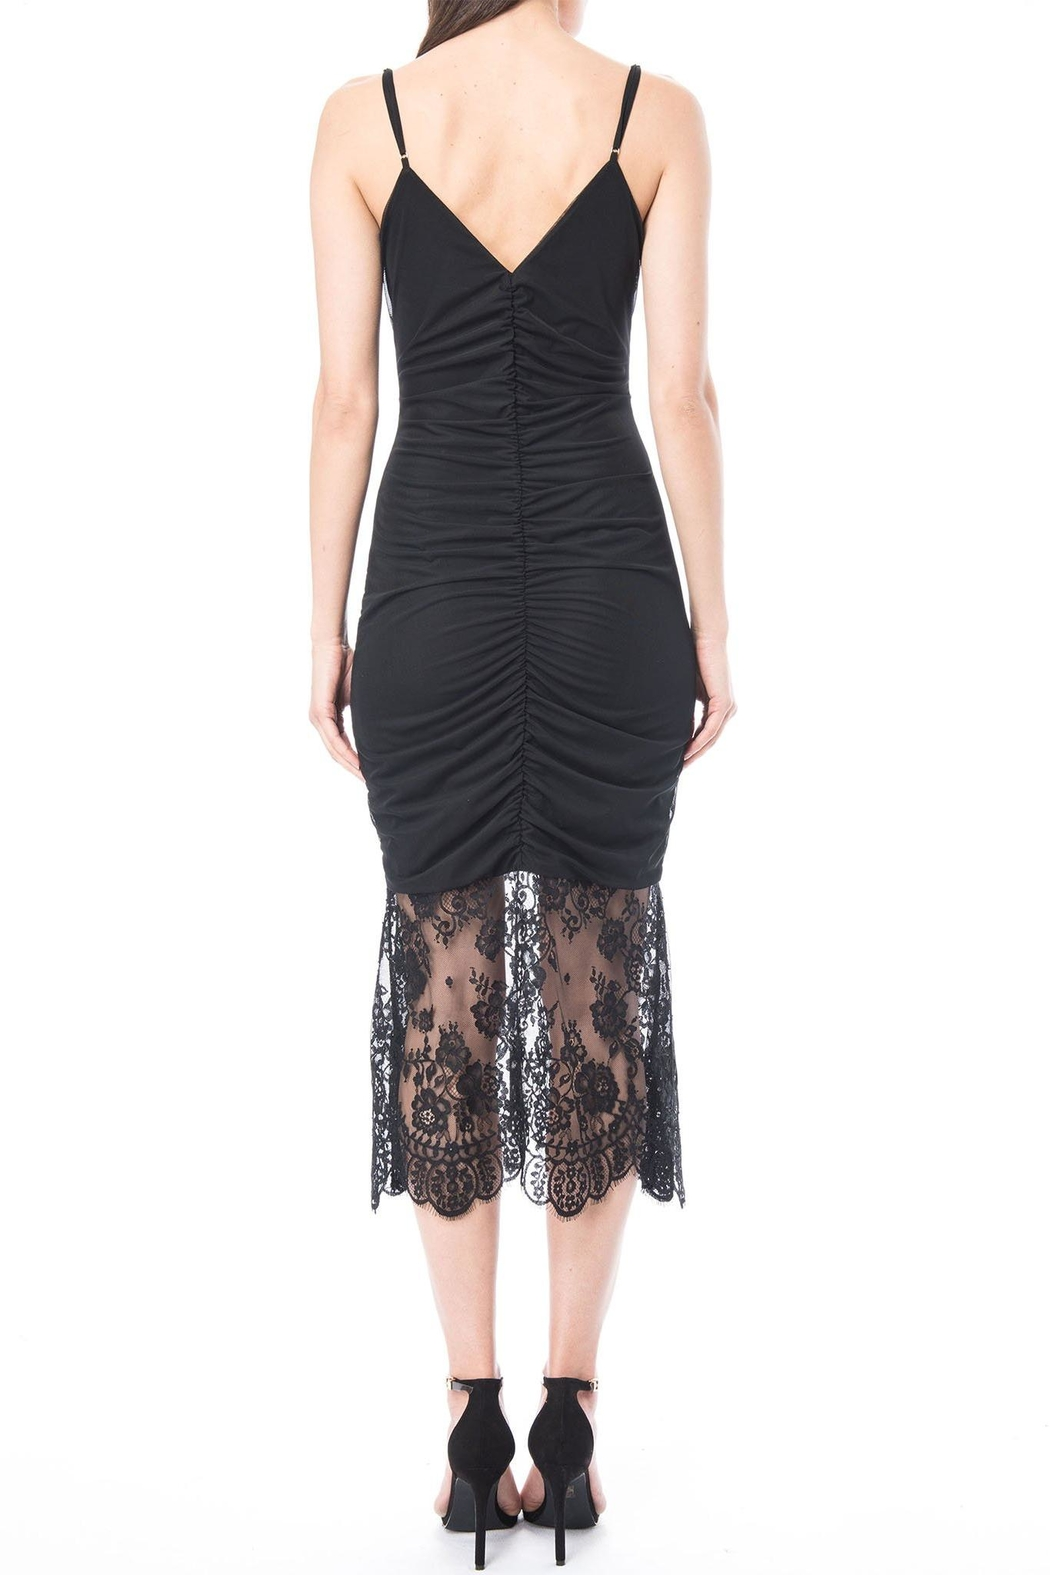 Cami NYC Ohanna Mesh Dress - Front Full Image